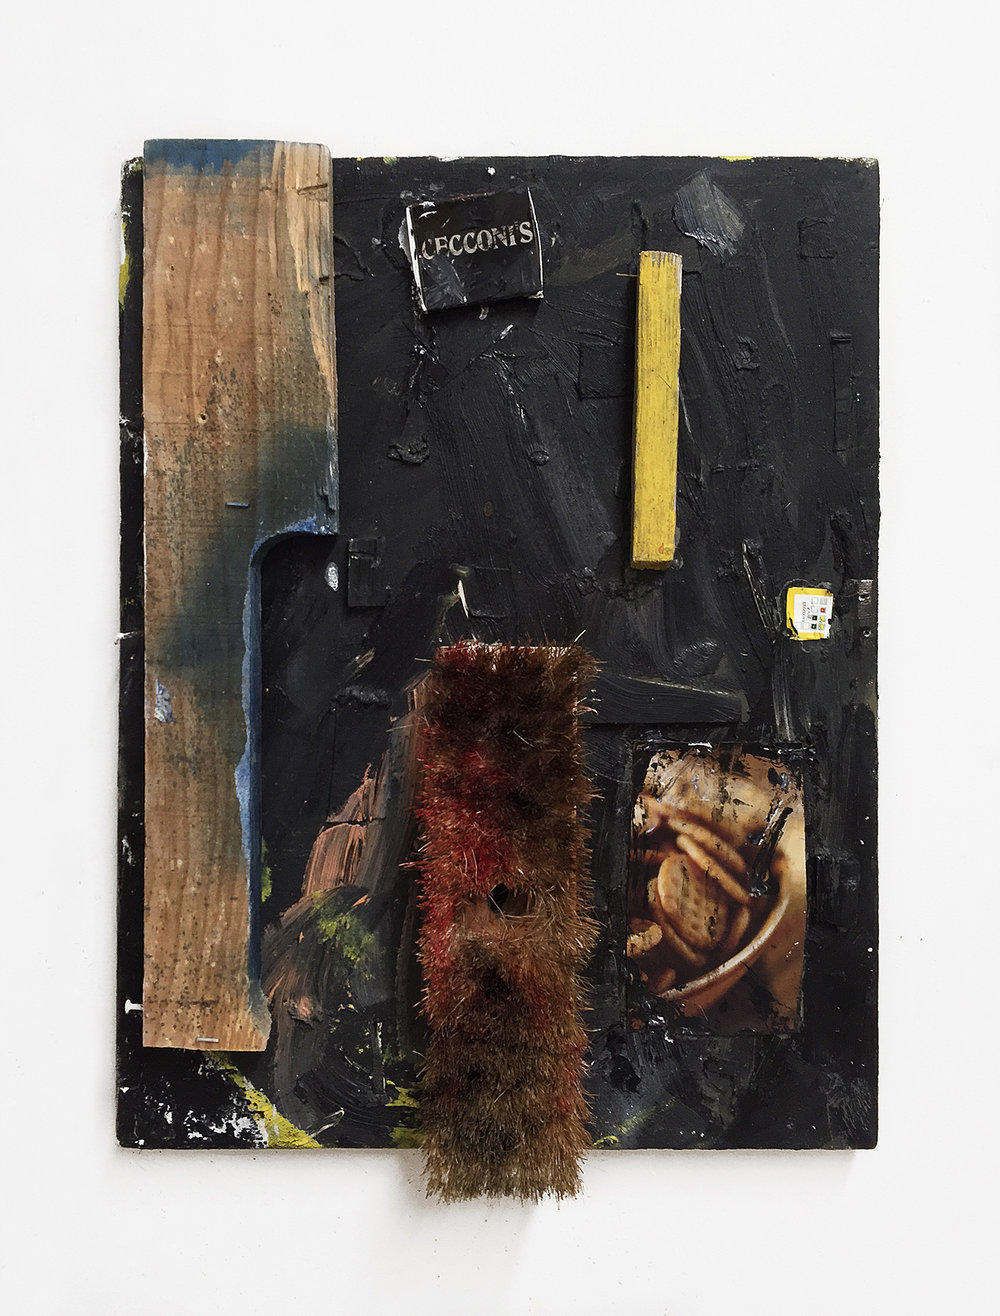 Untitled , 2018 Oil, wood, broom, matchbook, cardboard, cracker box, canvas 14in x 18in